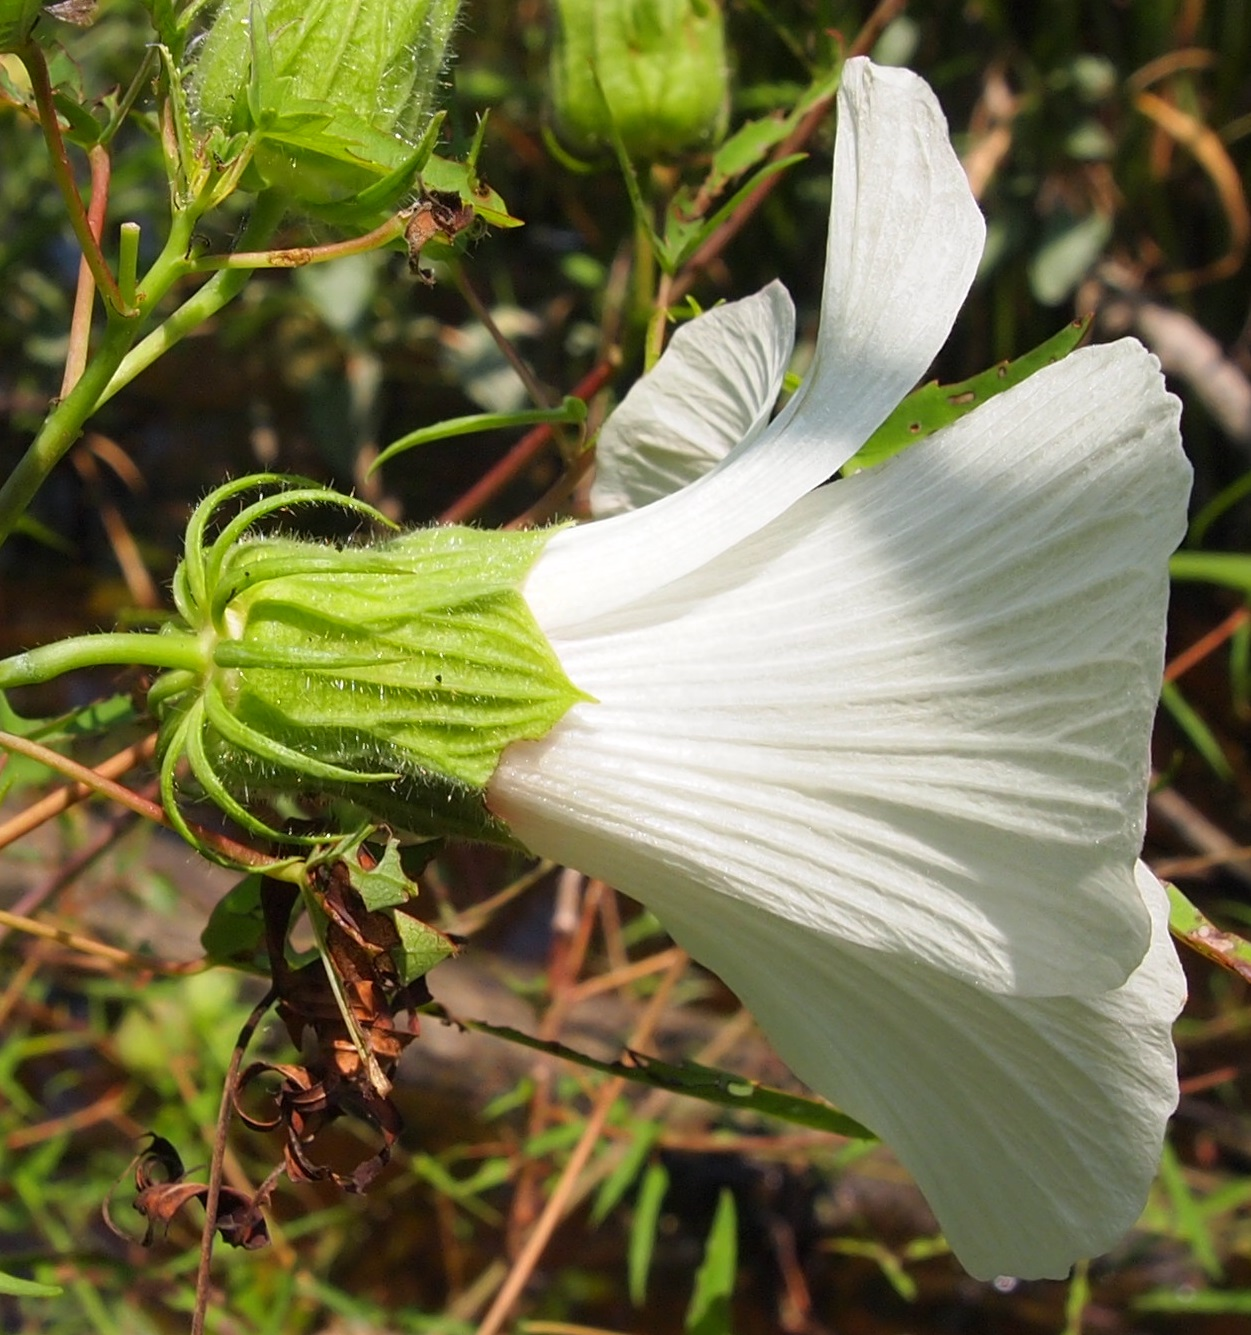 Neches river rose mallow federal state listed plants of texas neches river rose mallow has hairy bracts and sepals the bracts have some erect hairs izmirmasajfo